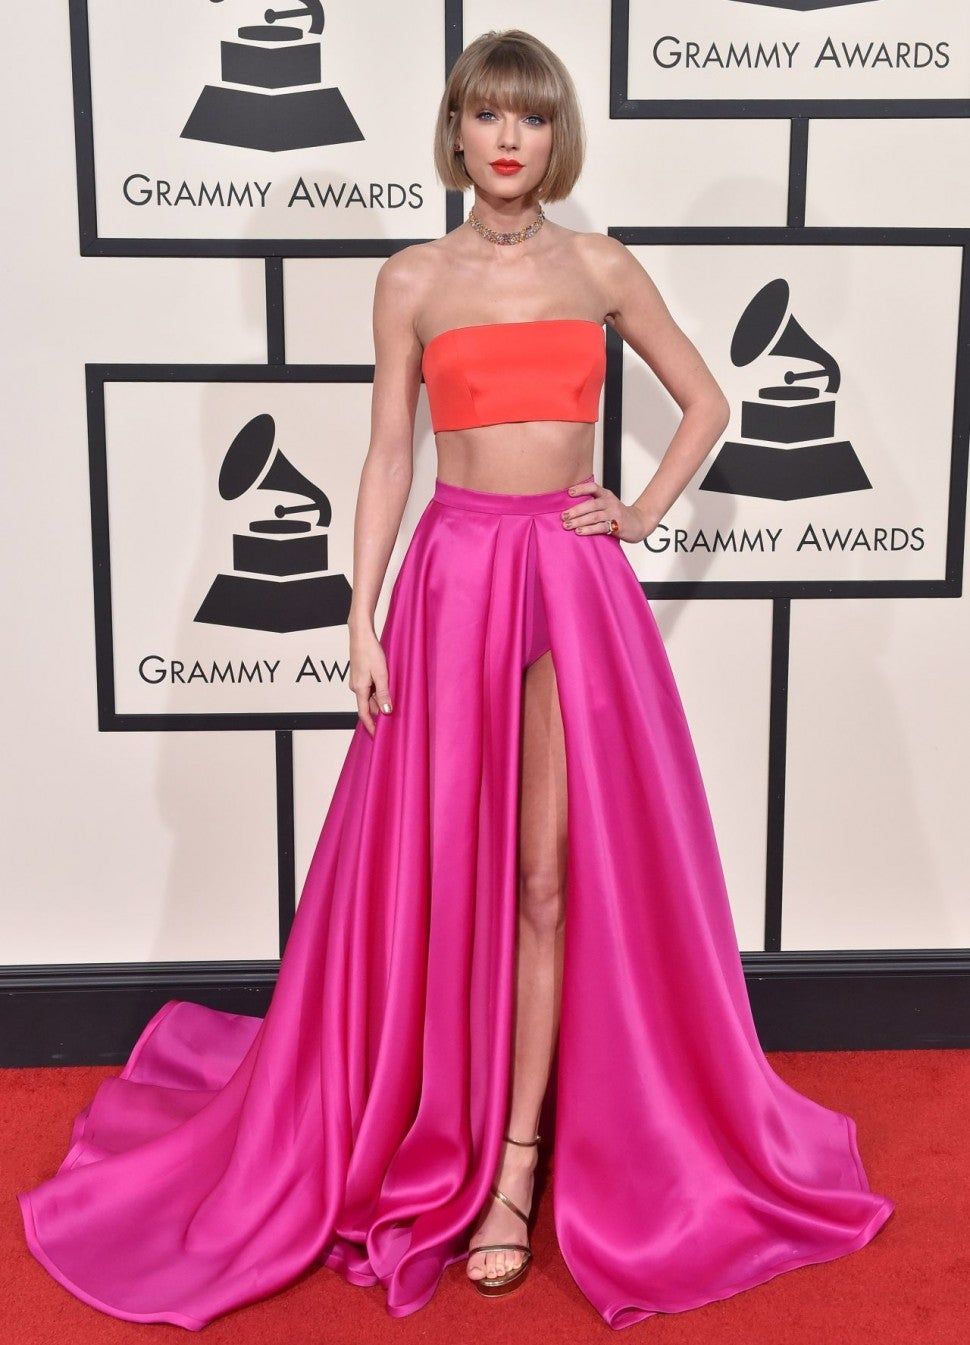 Taylor Swift S Grammys History A Look Back At Her Most Memorable Moments Entertainment Tonight